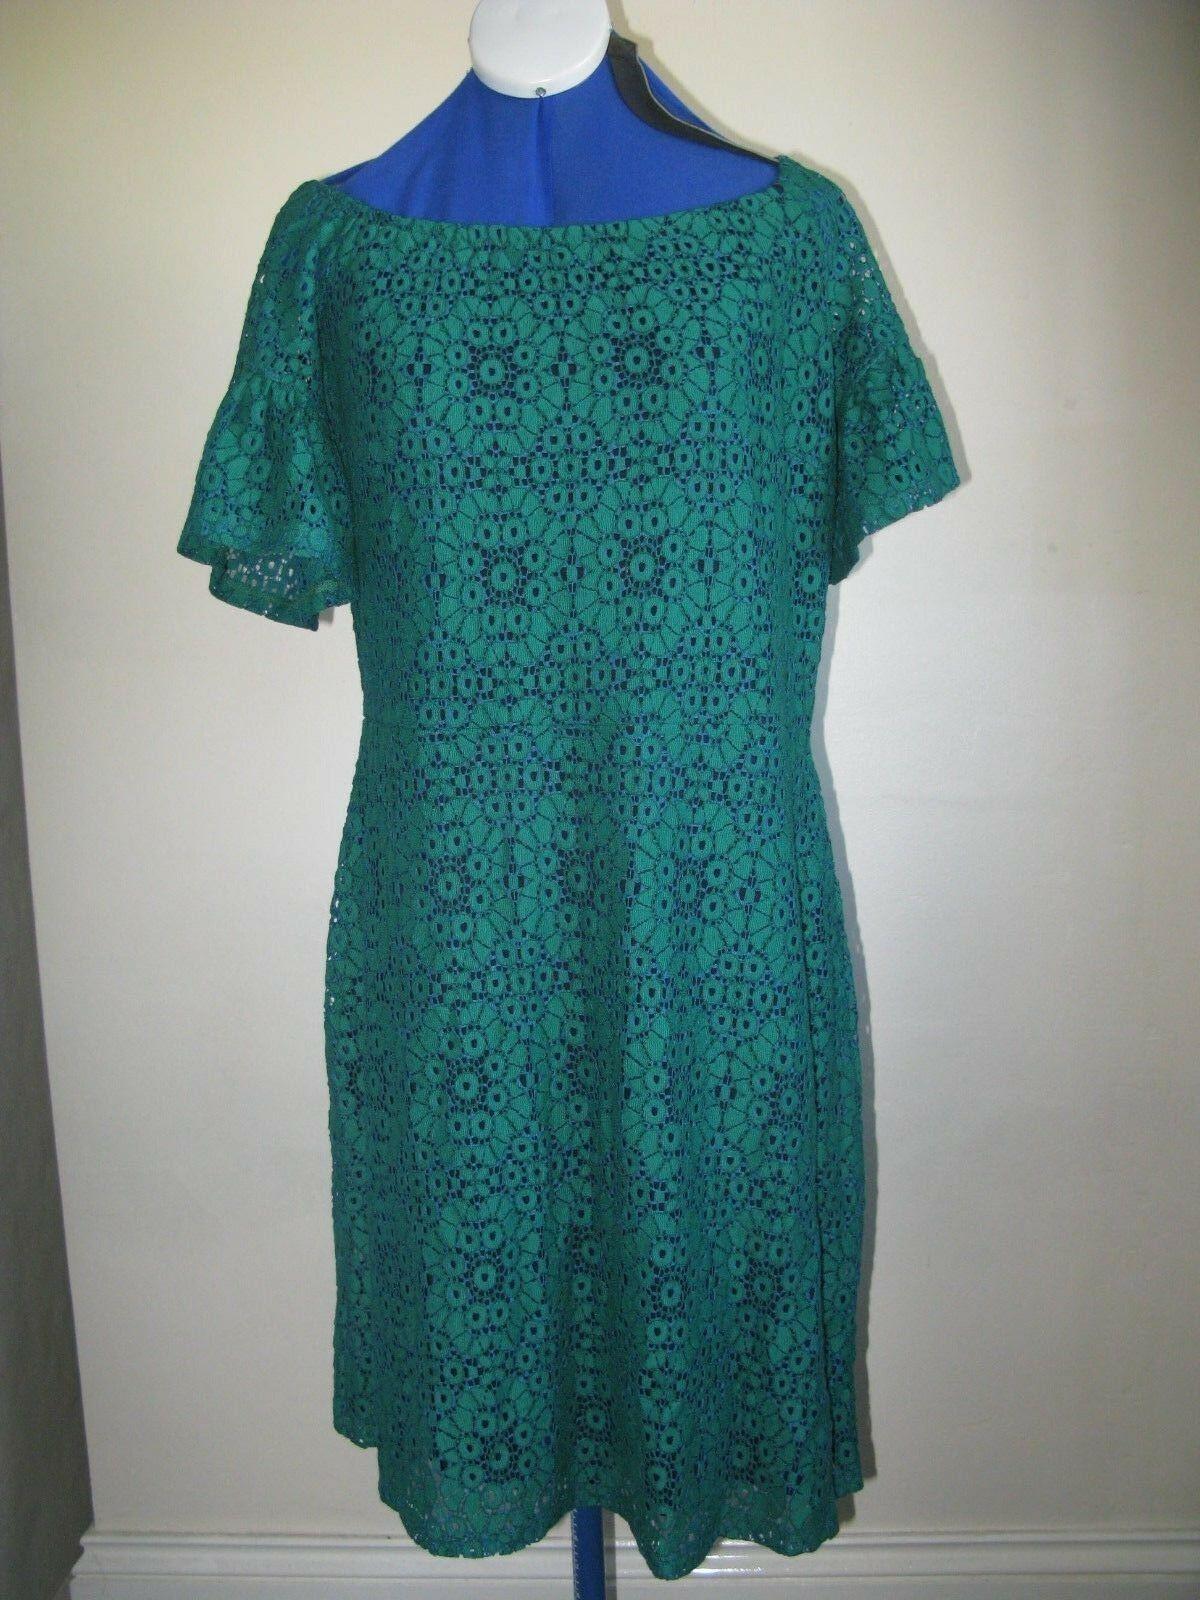 K SIMPLY BE DRESS GREEN LACE WITH NAVY LINING UK SIZE 14 SHORT SLEEVE